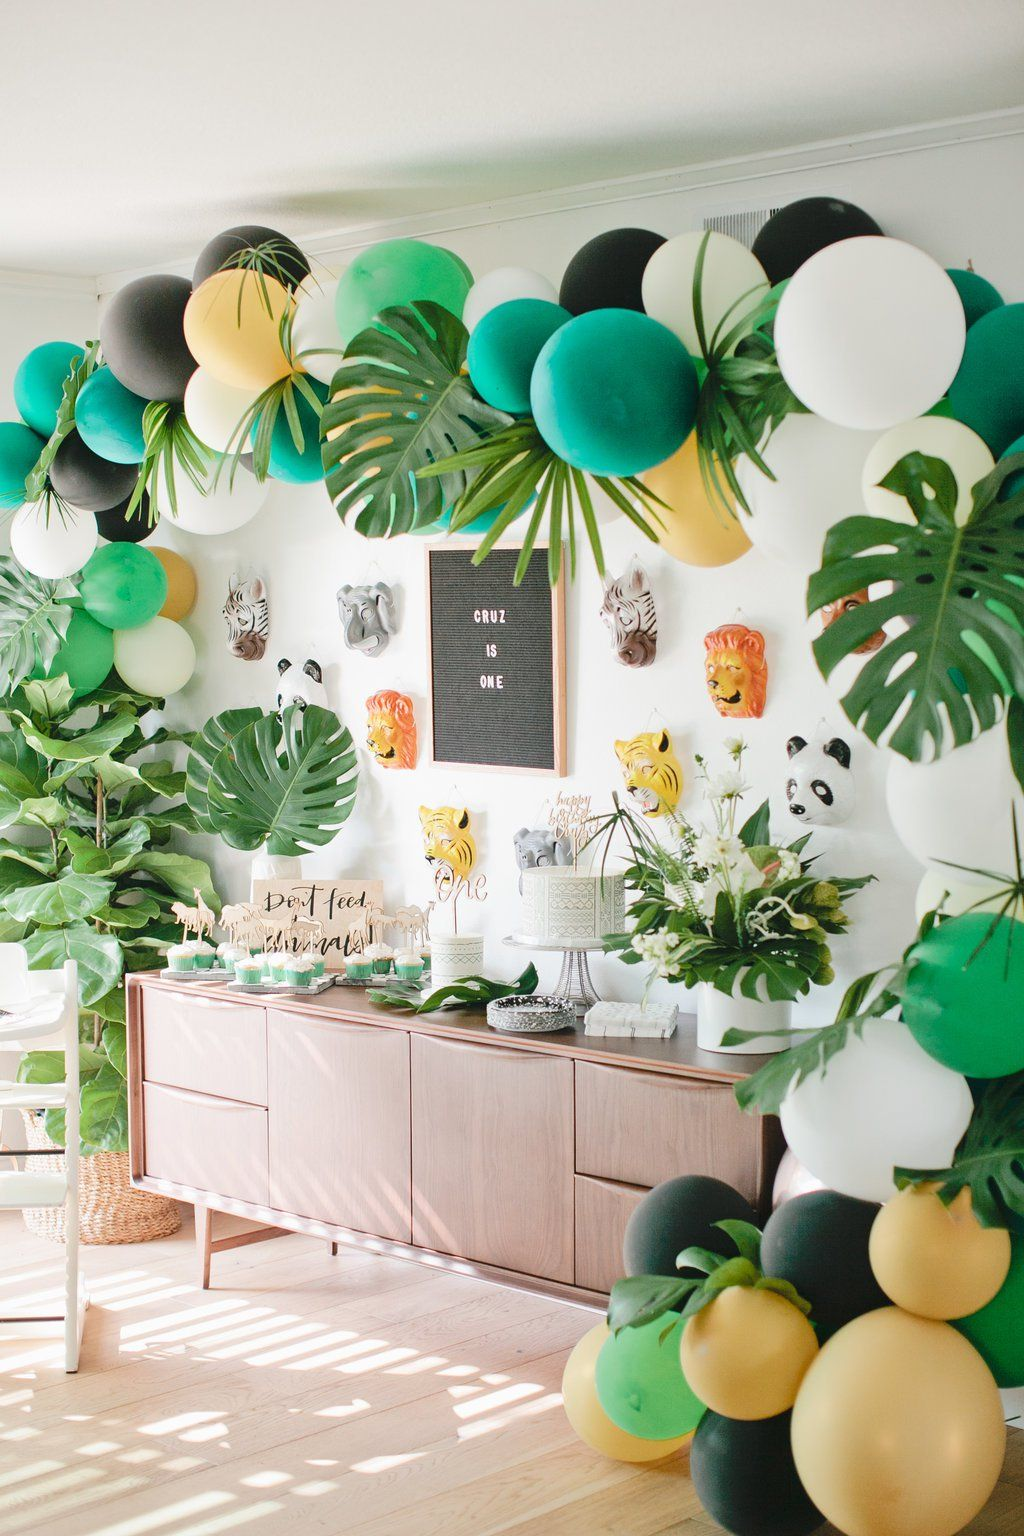 jungle party cruz turns one mavs 5th pinterest geburtstag deko geburtstag und diy. Black Bedroom Furniture Sets. Home Design Ideas